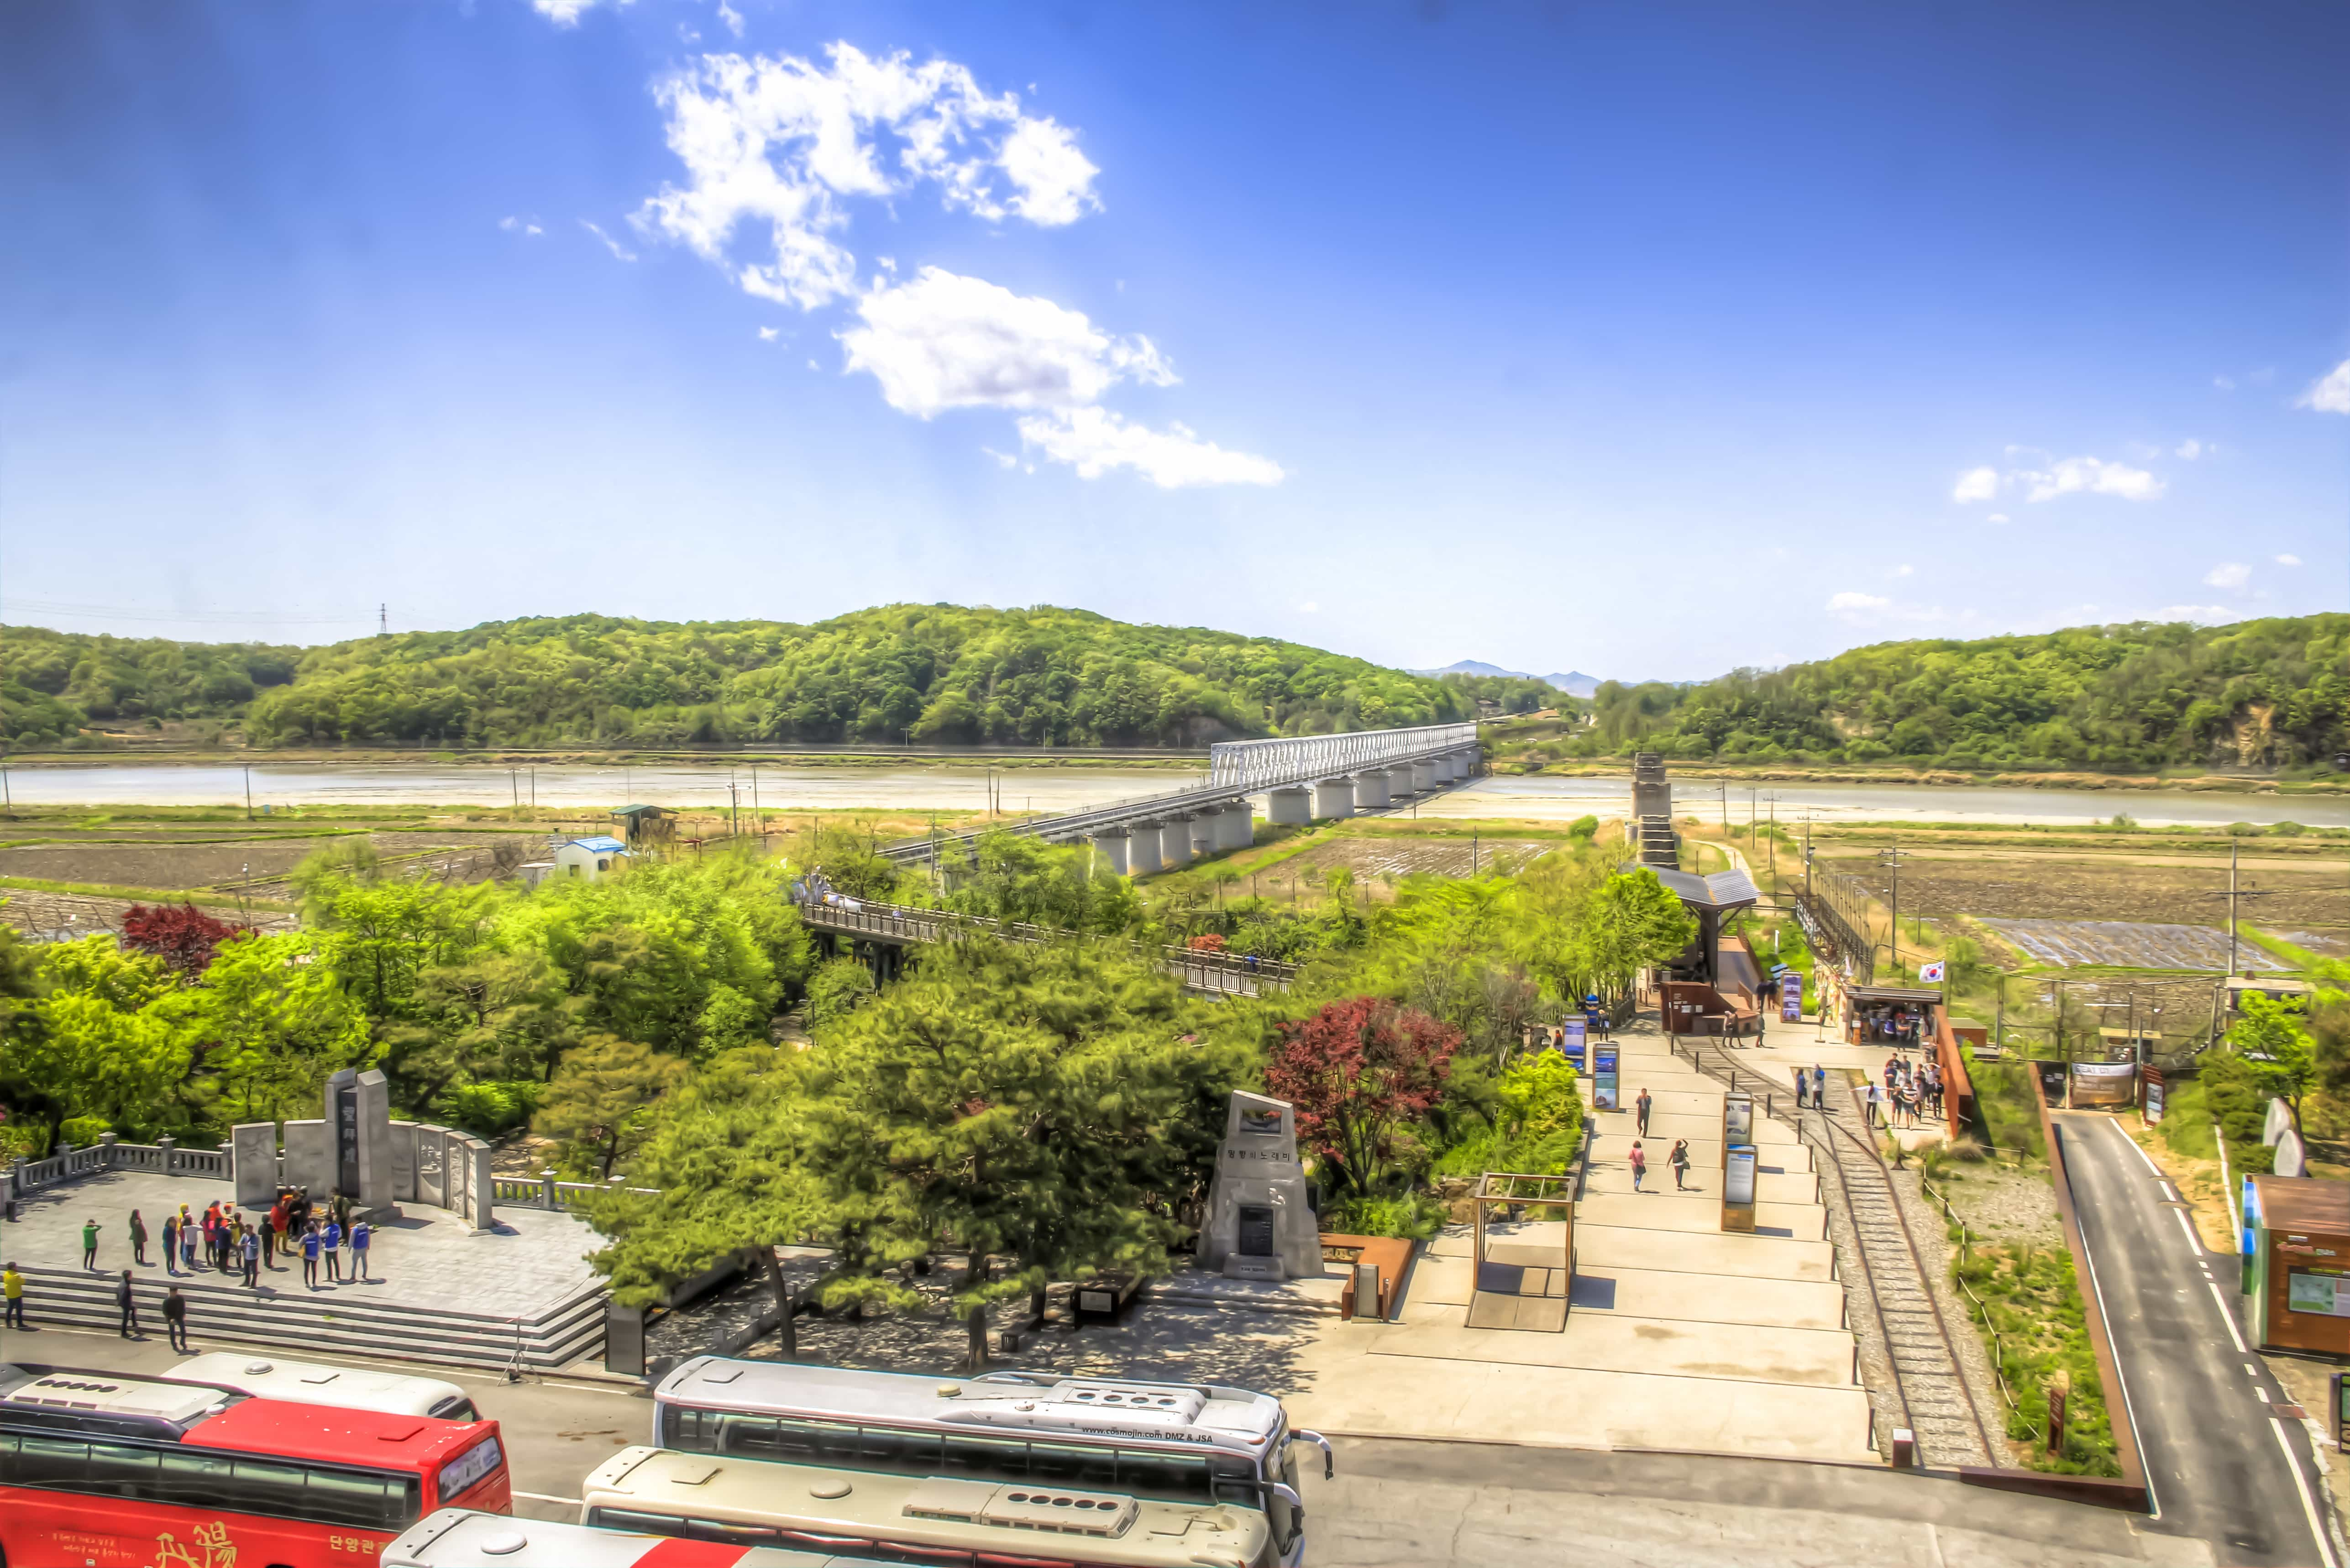 """Would you visit """"the most dangerous place on Earth?"""" The world's only demilitarized zone? Korea's DMZ proves both interesting and educational. Read more at www.thefivefoottraveler.com"""